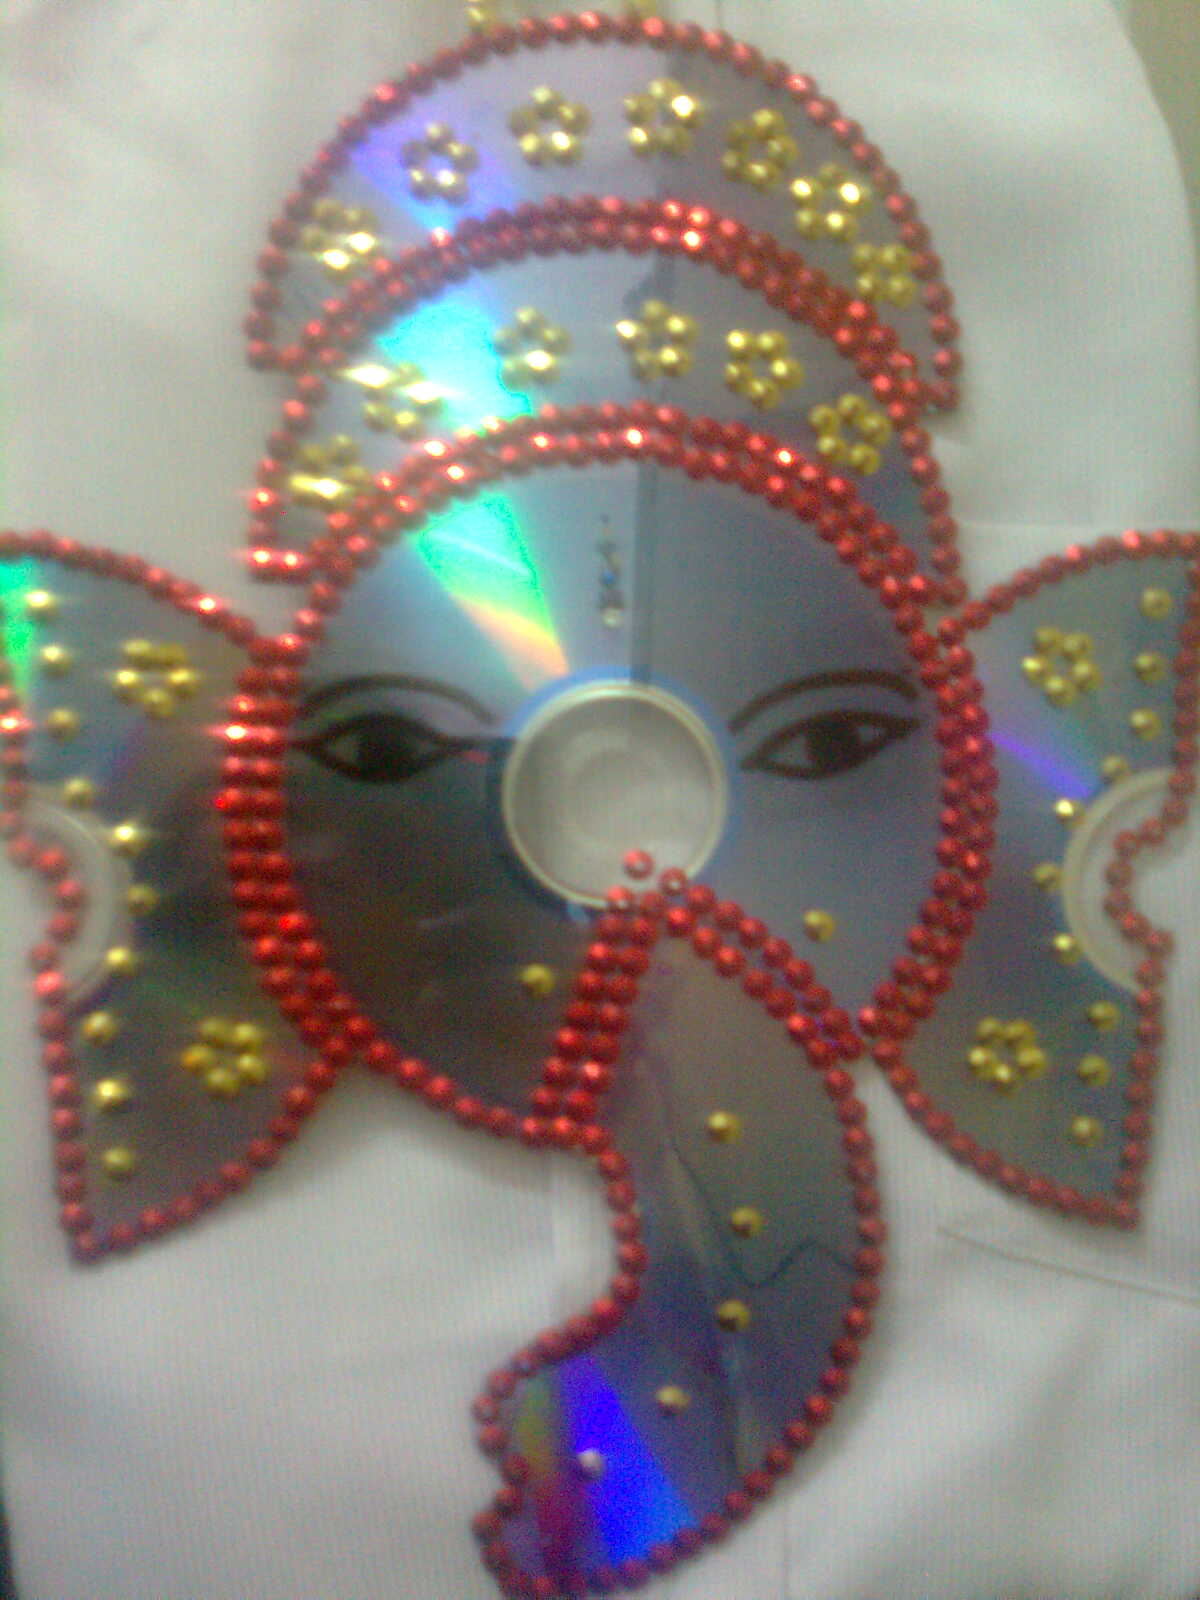 Maha arts crafts cd ganesh vinayagar for Things made from waste